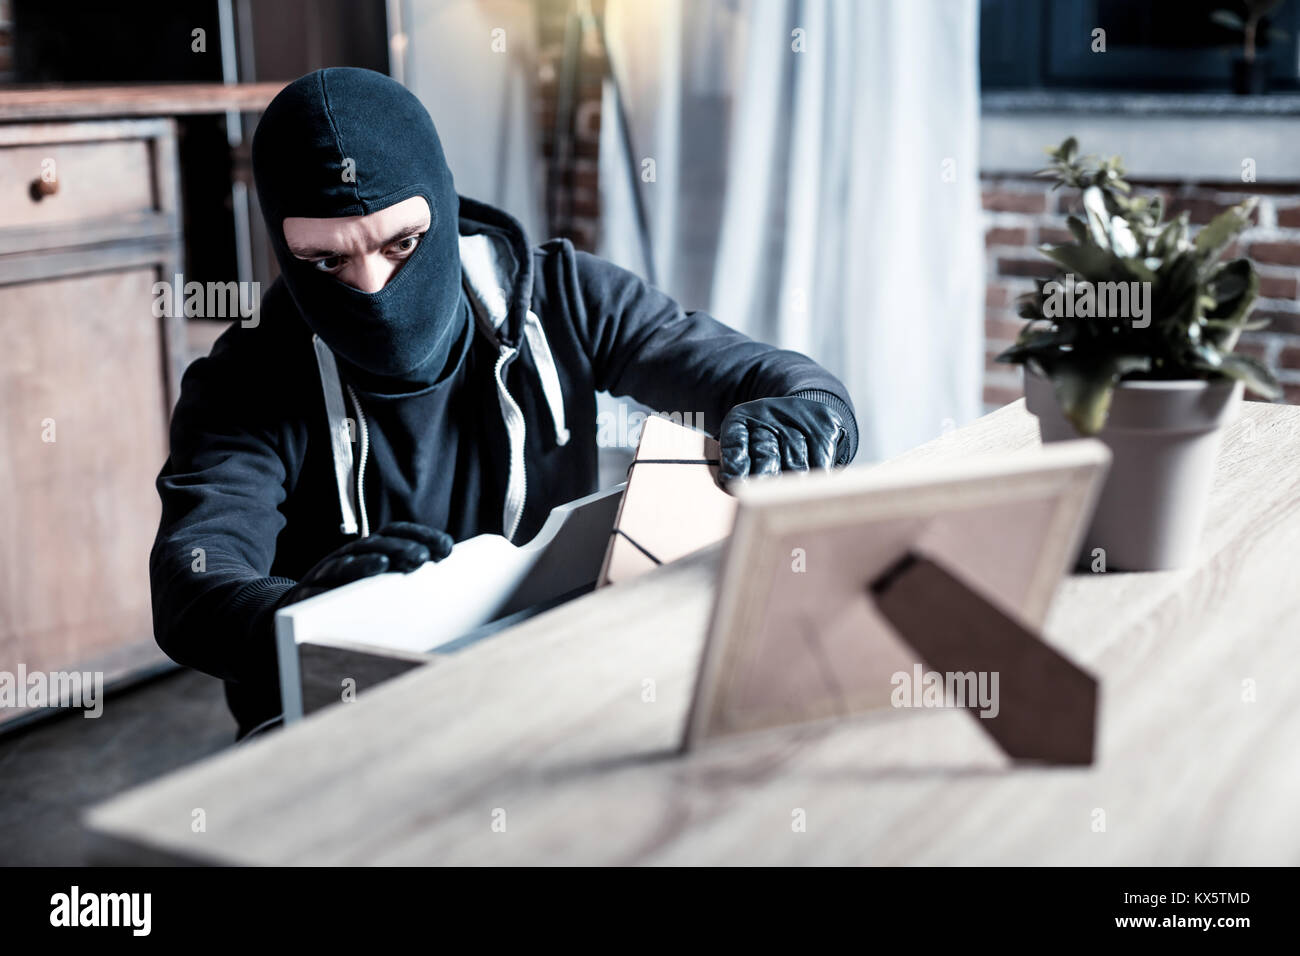 Masked thief stealing money from the table - Stock Image